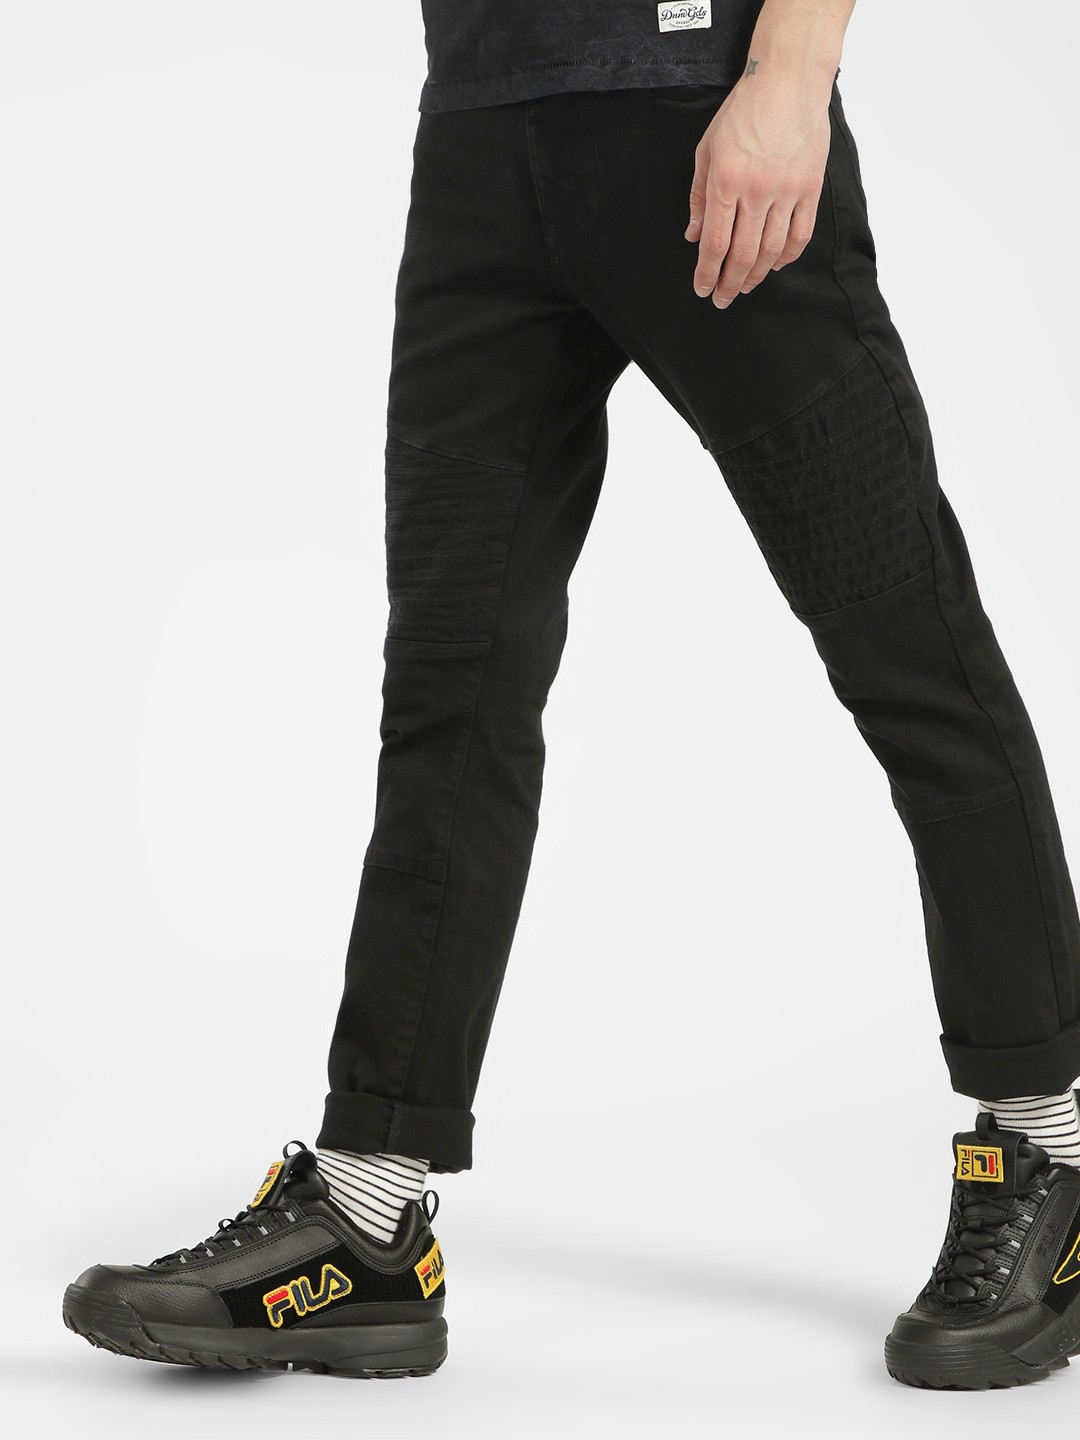 Blue Saint Black Biker Panel Skinny Jeans 1